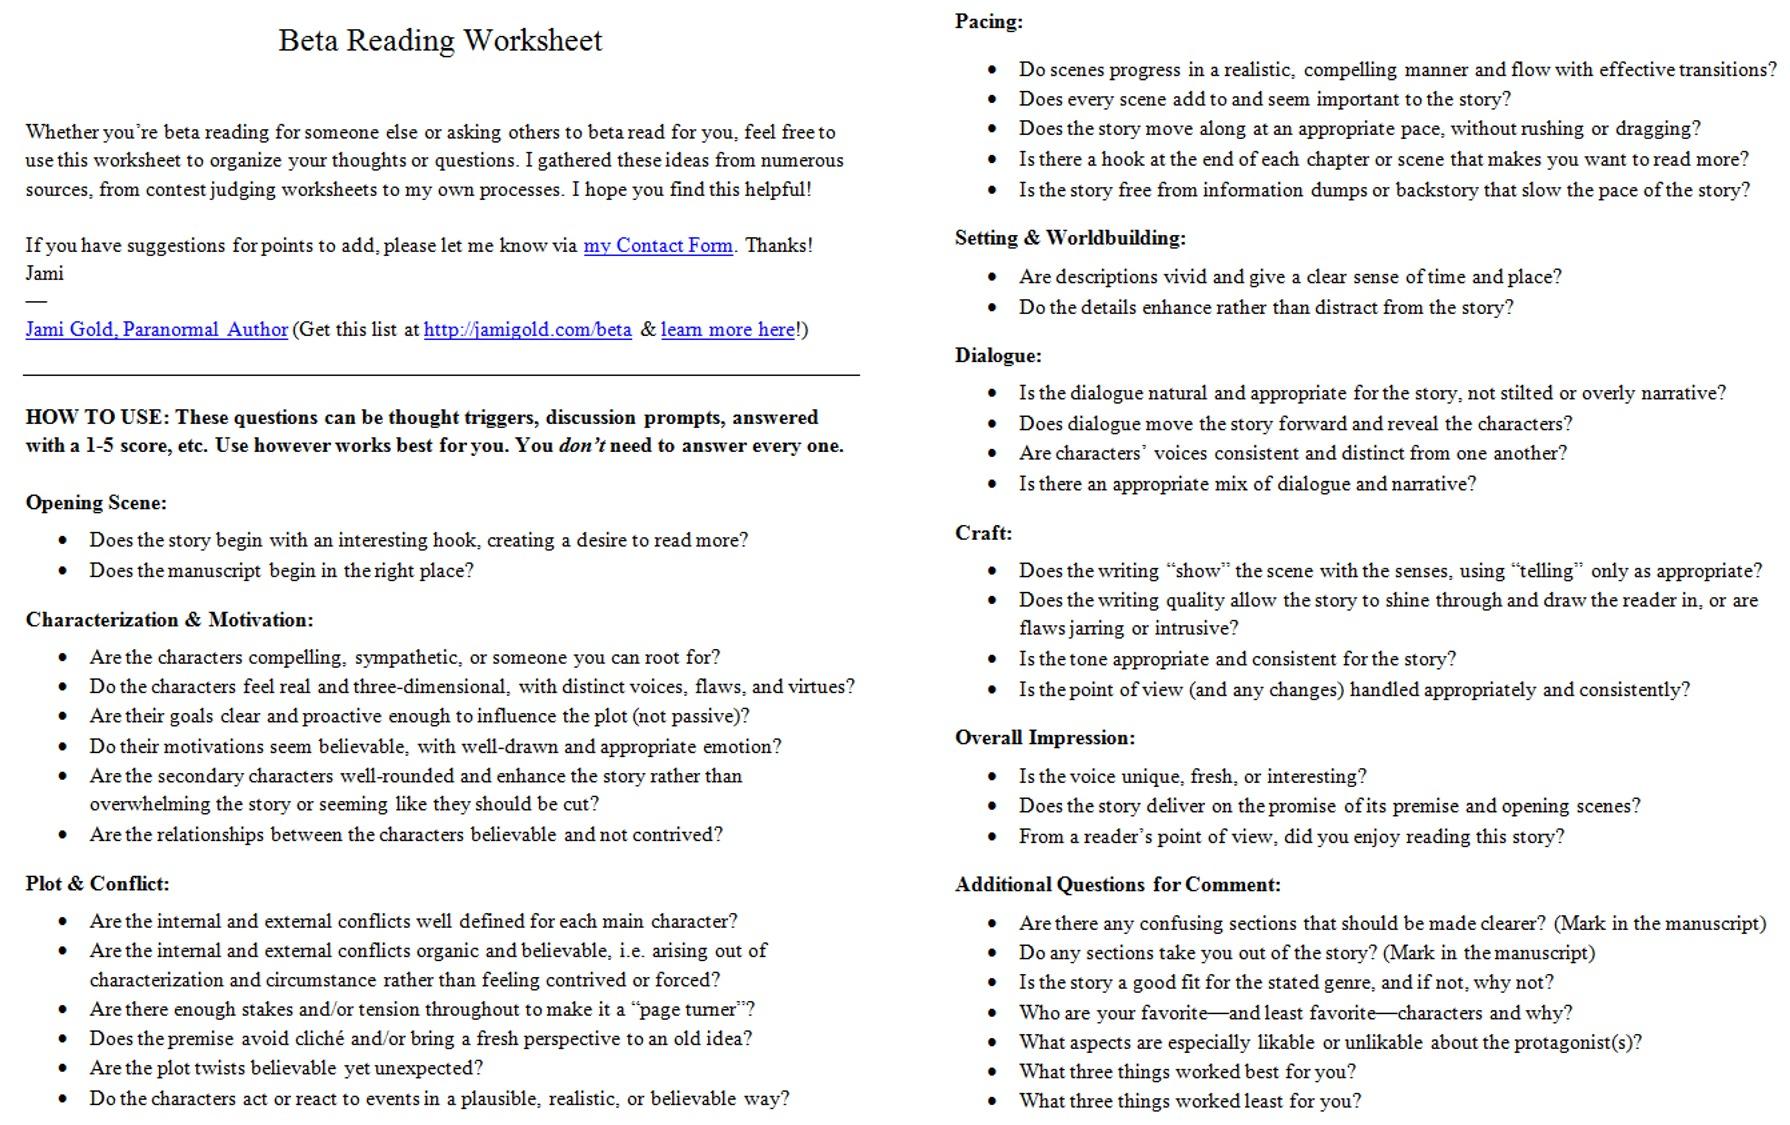 Aldiablosus  Marvellous Worksheets For Writers  Jami Gold Paranormal Author With Fascinating Screen Shot Of The Twopage Beta Reading Worksheet With Alluring Addition Worksheets With Number Line Also Small Business Expense Worksheet In Addition Possessive Nouns Worksheets St Grade And Free Dividing Fractions Worksheets As Well As Adding Positive And Negative Integers Worksheets Additionally Th Grade Vocabulary Worksheets Free From Jamigoldcom With Aldiablosus  Fascinating Worksheets For Writers  Jami Gold Paranormal Author With Alluring Screen Shot Of The Twopage Beta Reading Worksheet And Marvellous Addition Worksheets With Number Line Also Small Business Expense Worksheet In Addition Possessive Nouns Worksheets St Grade From Jamigoldcom